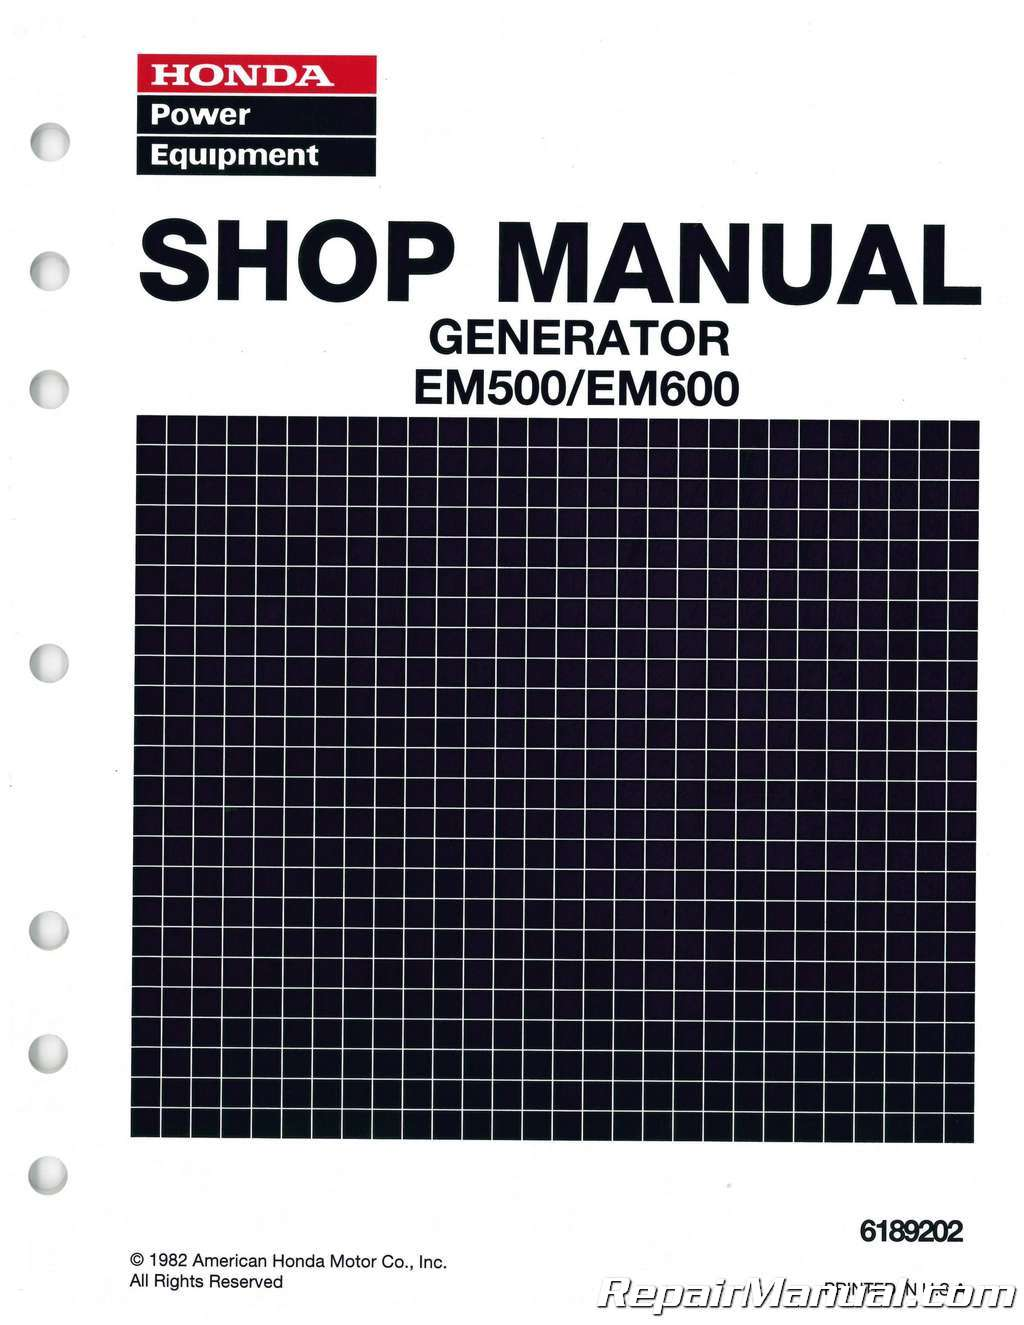 Honda Em500 Generator Shop Manual Blaupunkt 420 Bt Wiring Diagram And Em600 Rh Repairmanual Com Em 500 Carburetor Parts